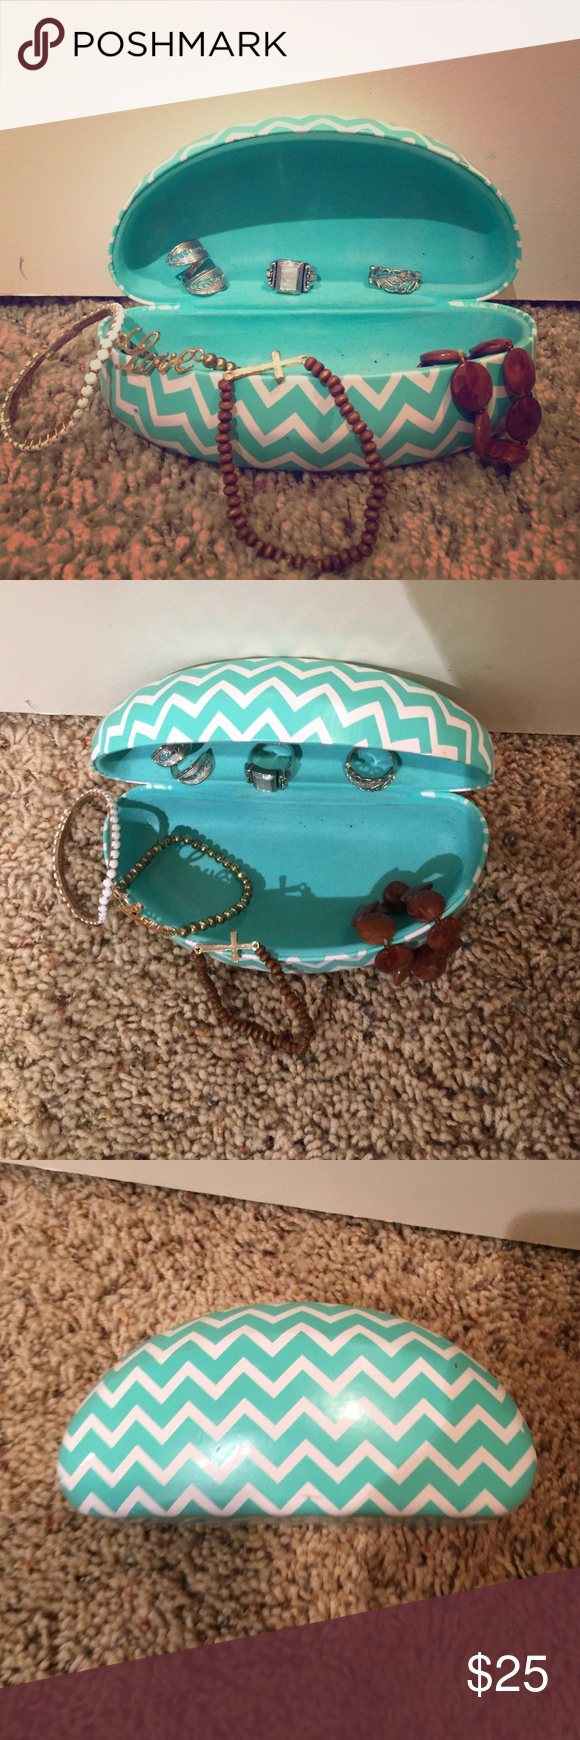 Glasses Case with Jewelry Bundle This teal and white chevron print case is a chic and stylish way to keep your glasses safe. Bundled with three cute rings and four stretchy bracelets this purchase is worth it! Accessories